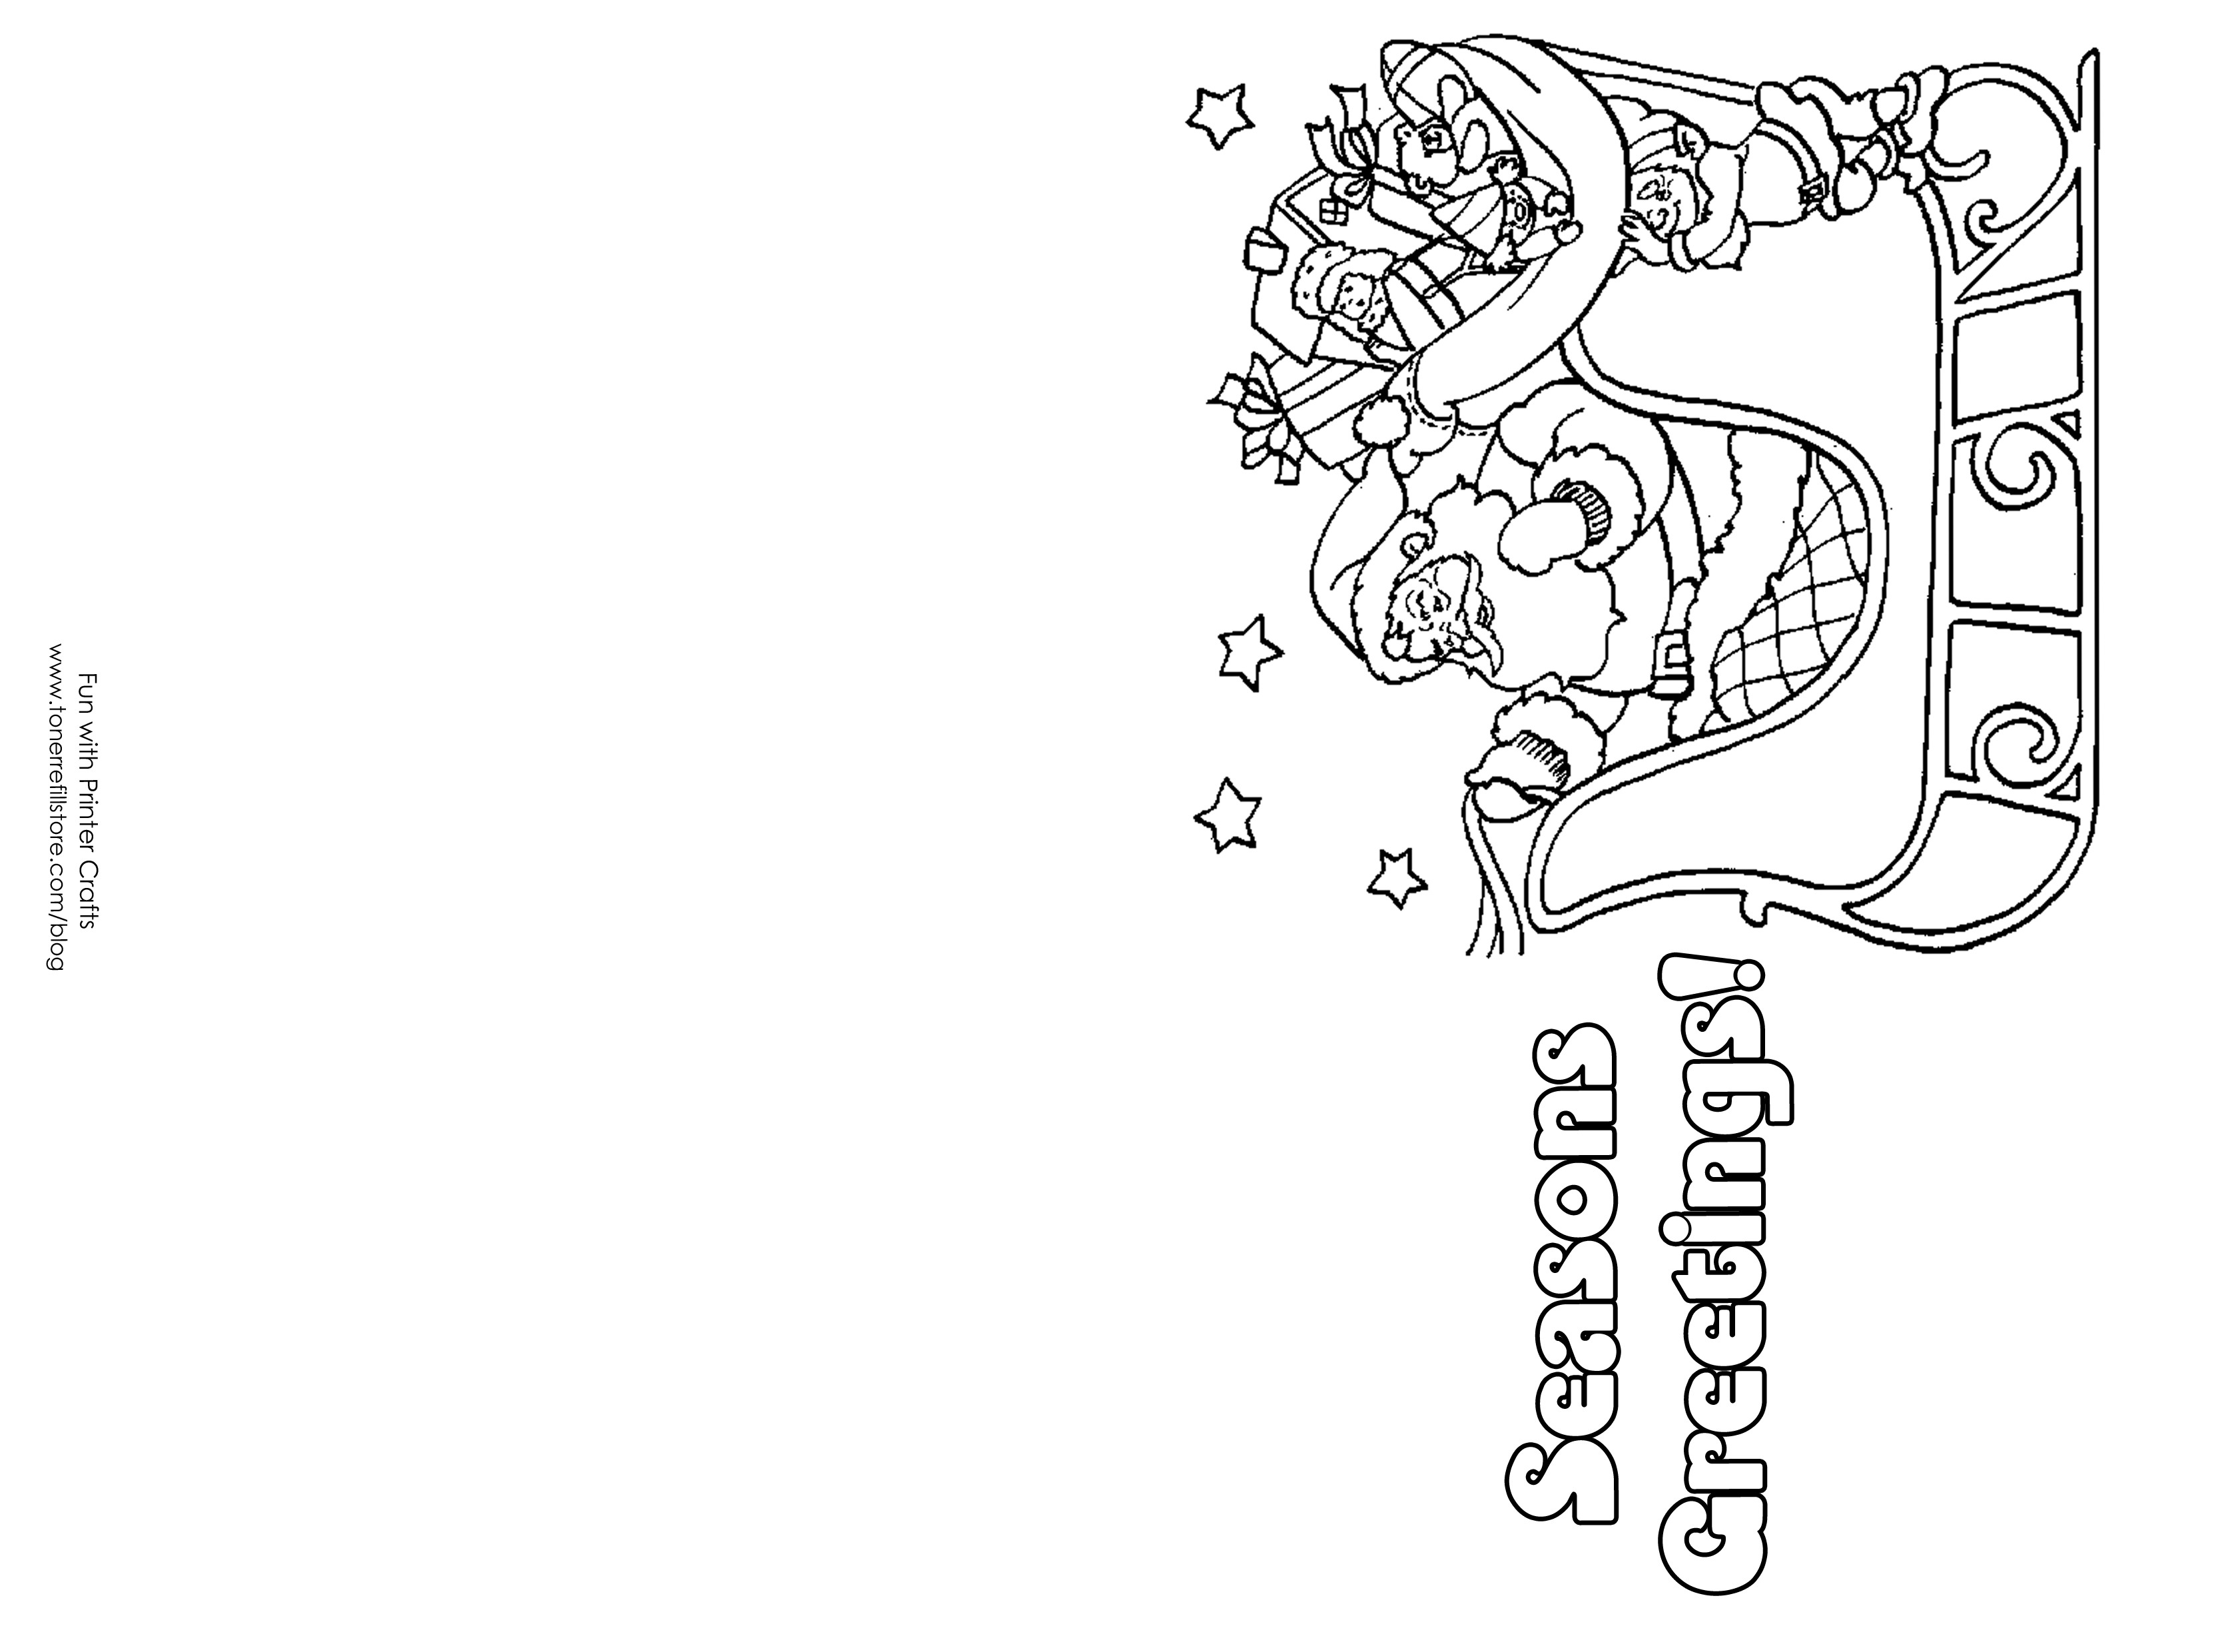 Christmas Card Coloring Pages With Templates To Color Reactorread Org